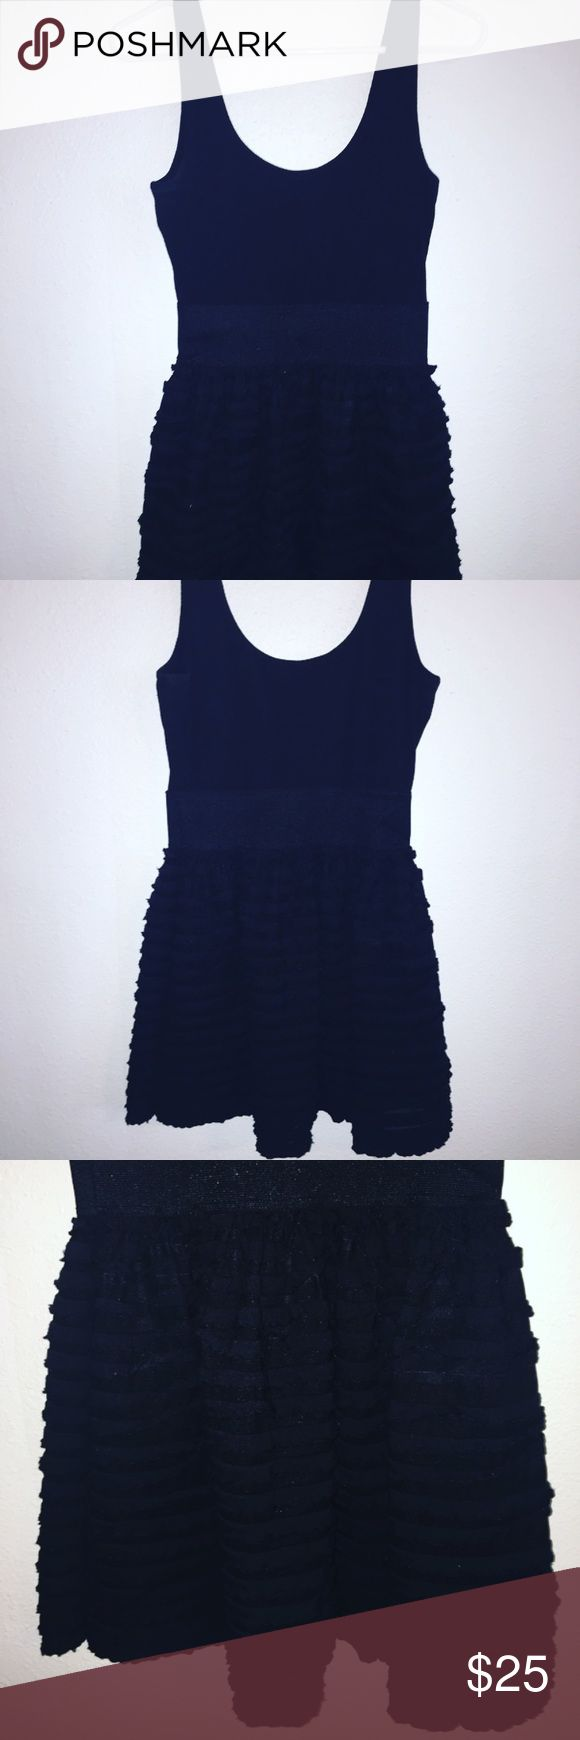 Miley Cyrus Black Mini Dress! Miley Cyrus Black Mini Dress with a ruffled skirt bottom! This is a fitted dress on top and it flows out to a ruffled skirt on bottom! Very comfortable *great condition* Miley Cyrus & Max Azria Dresses Mini